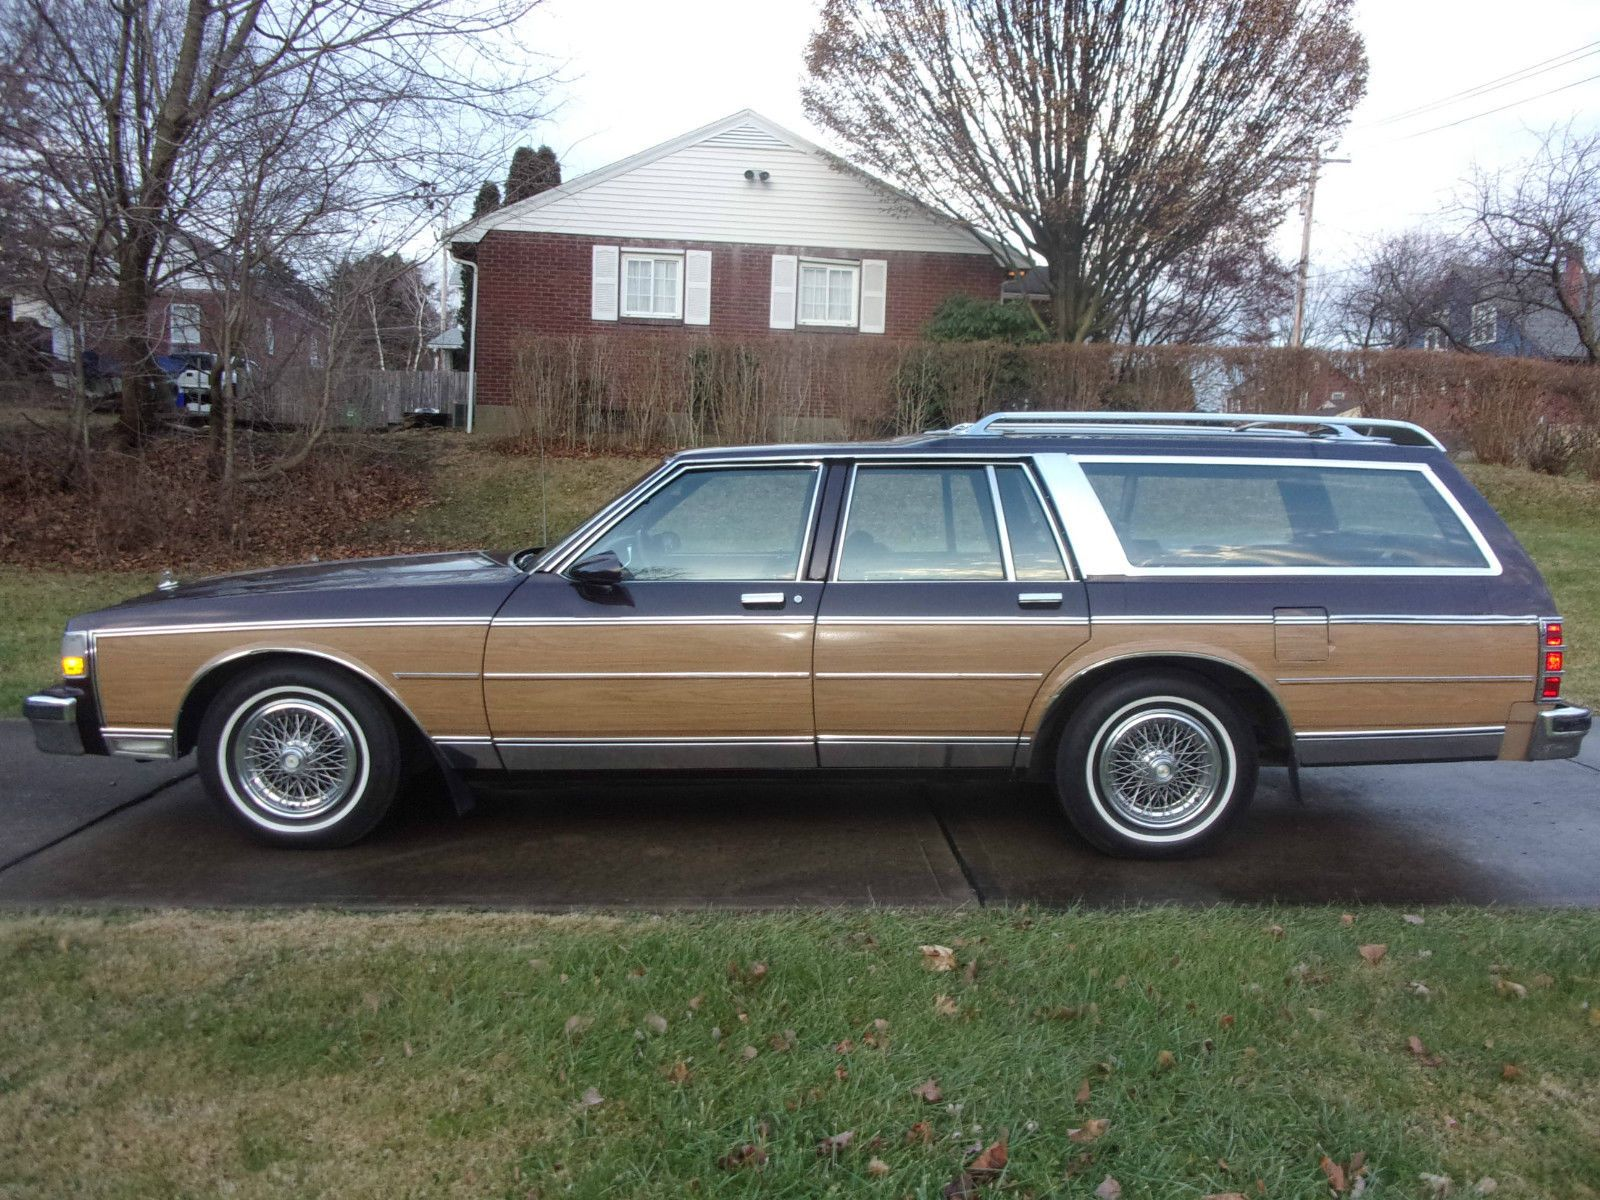 89 Chevrolet Caprice Estate Stationwagon